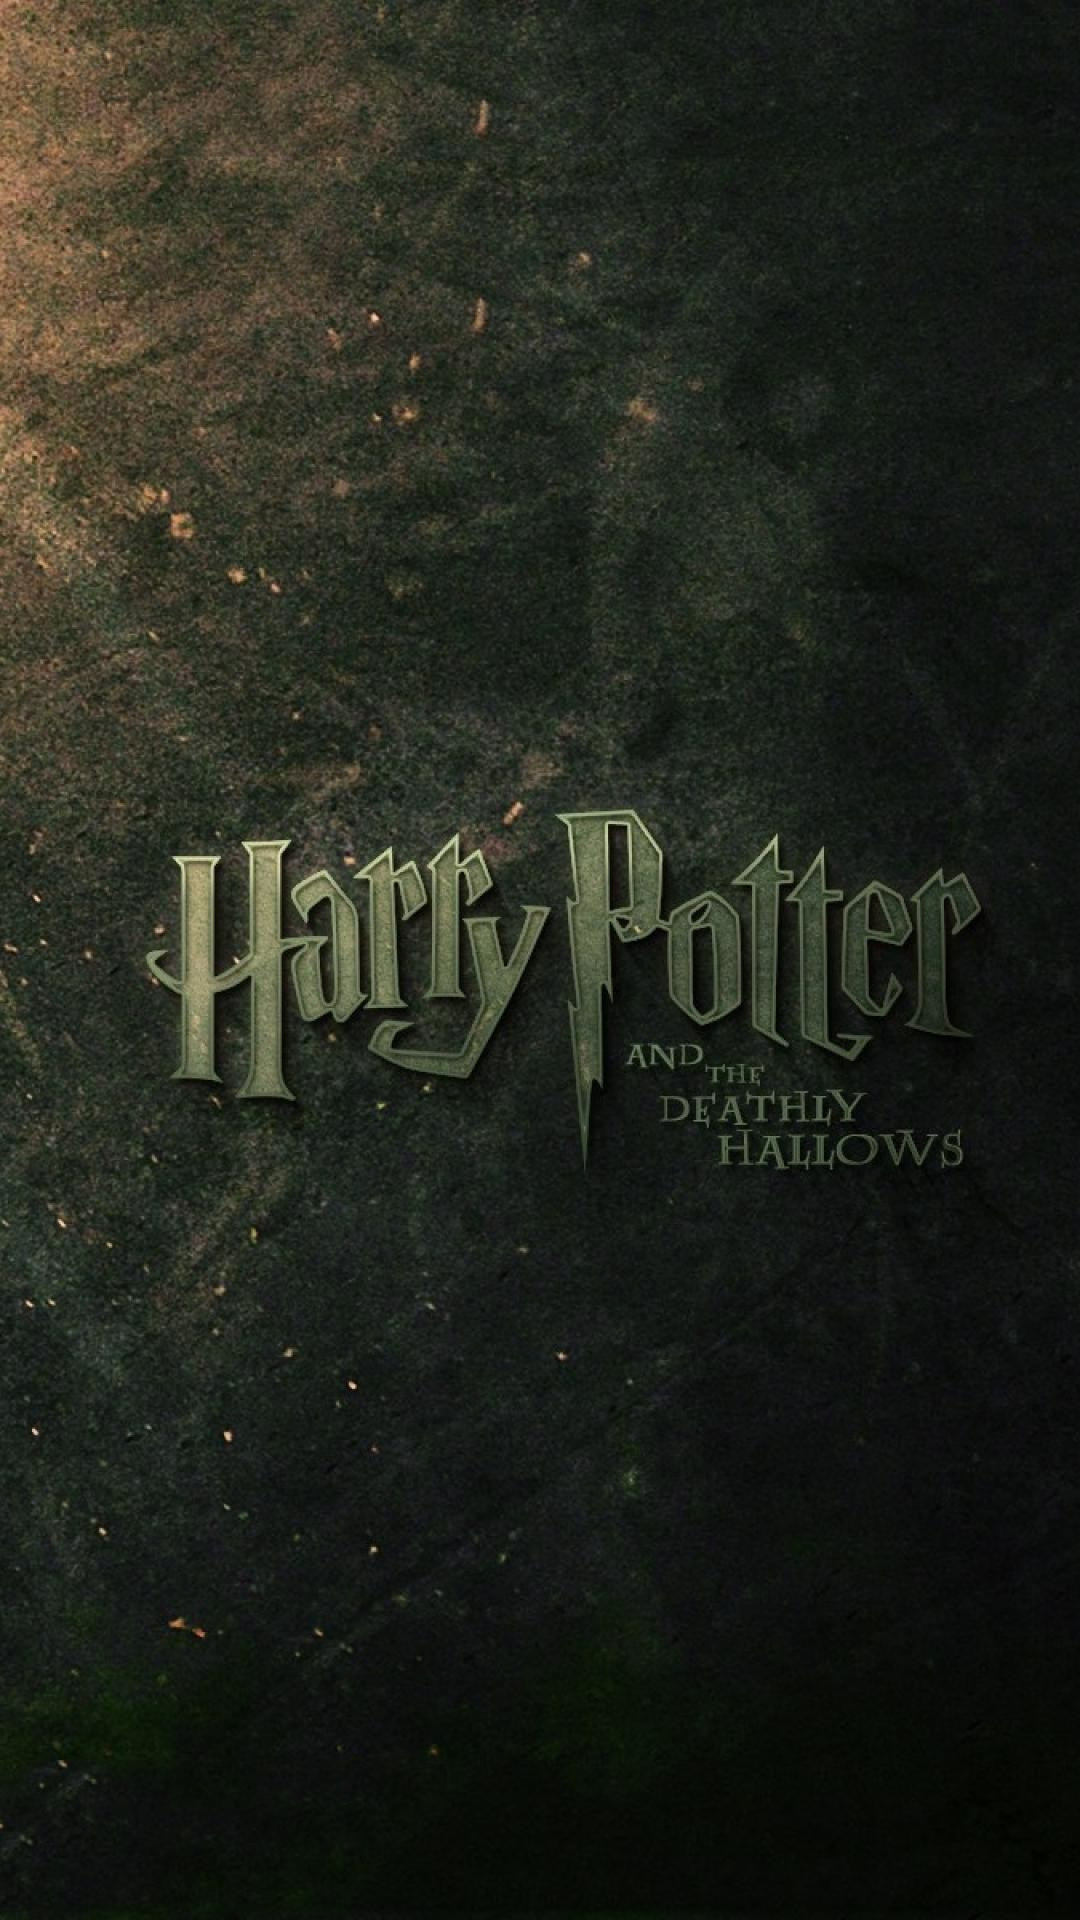 Must see Wallpaper Harry Potter Smartphone - 636485  2018_139068.jpg